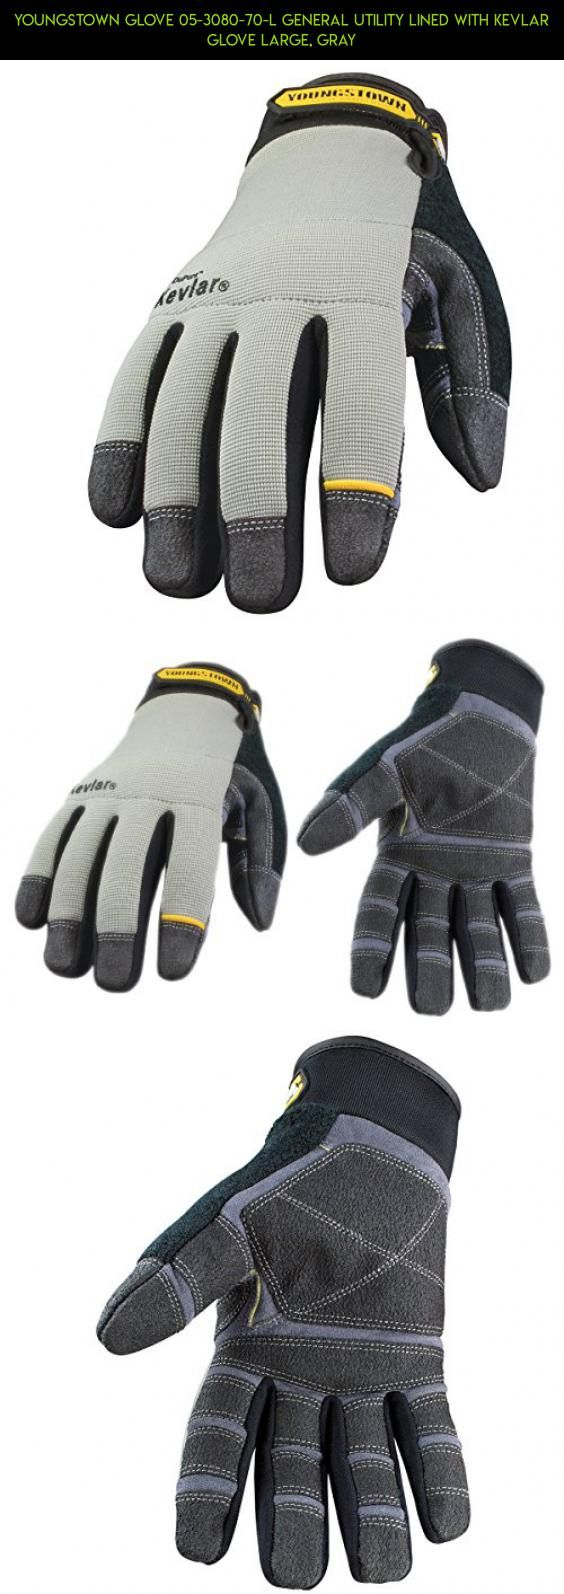 Youngstown Glove 05-3080-70-L General Utility Lined with KEVLAR Glove Large, Gray #tech #products #gadgets #shopping #racing #plans #kit #camera #wide #parts #technology #storage #9 #drone #fpv